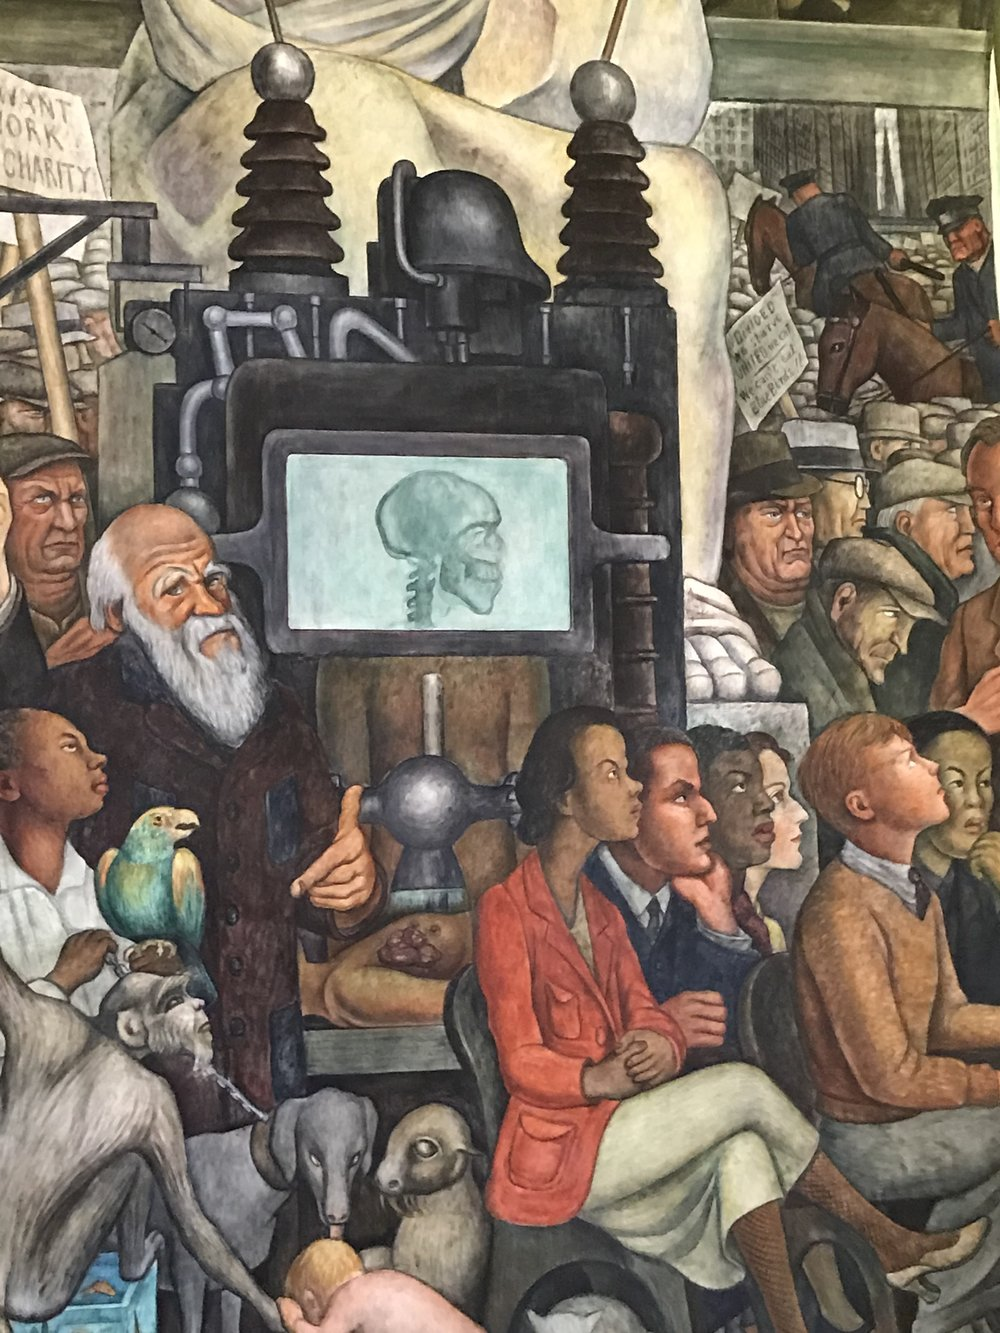 Oh hey! Darwin! This is from a (small) portion of Diego Rivera's mural El hombre controlador del universo (1934)